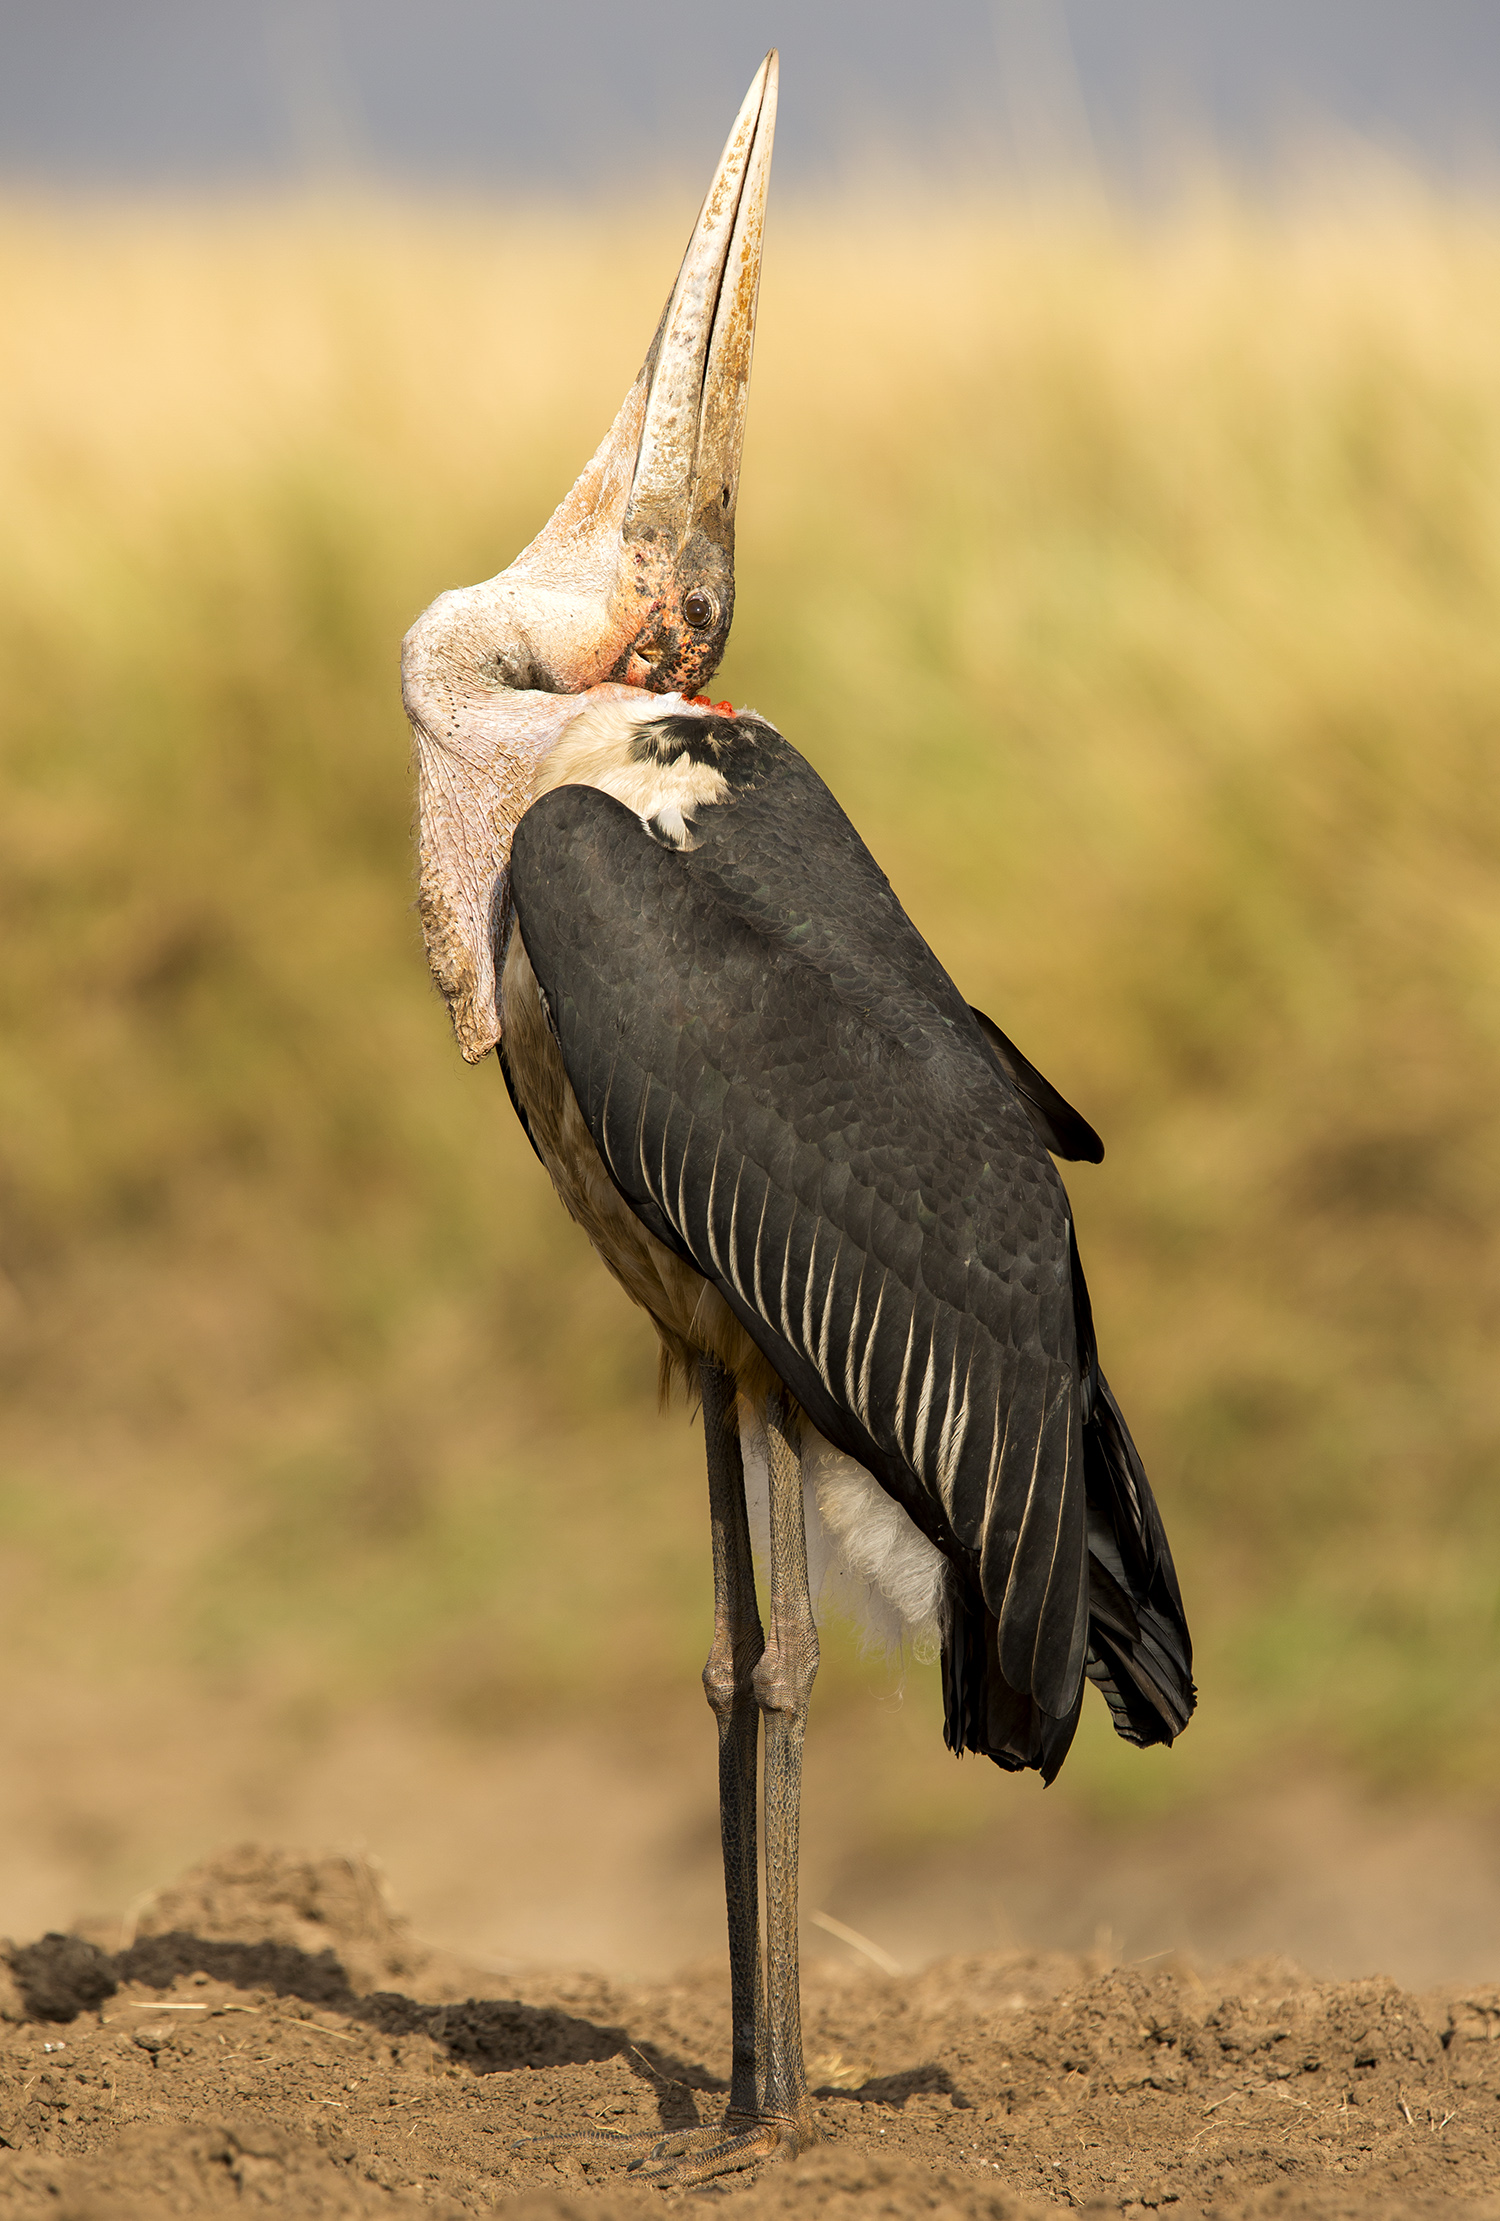 Marabou stork and neck